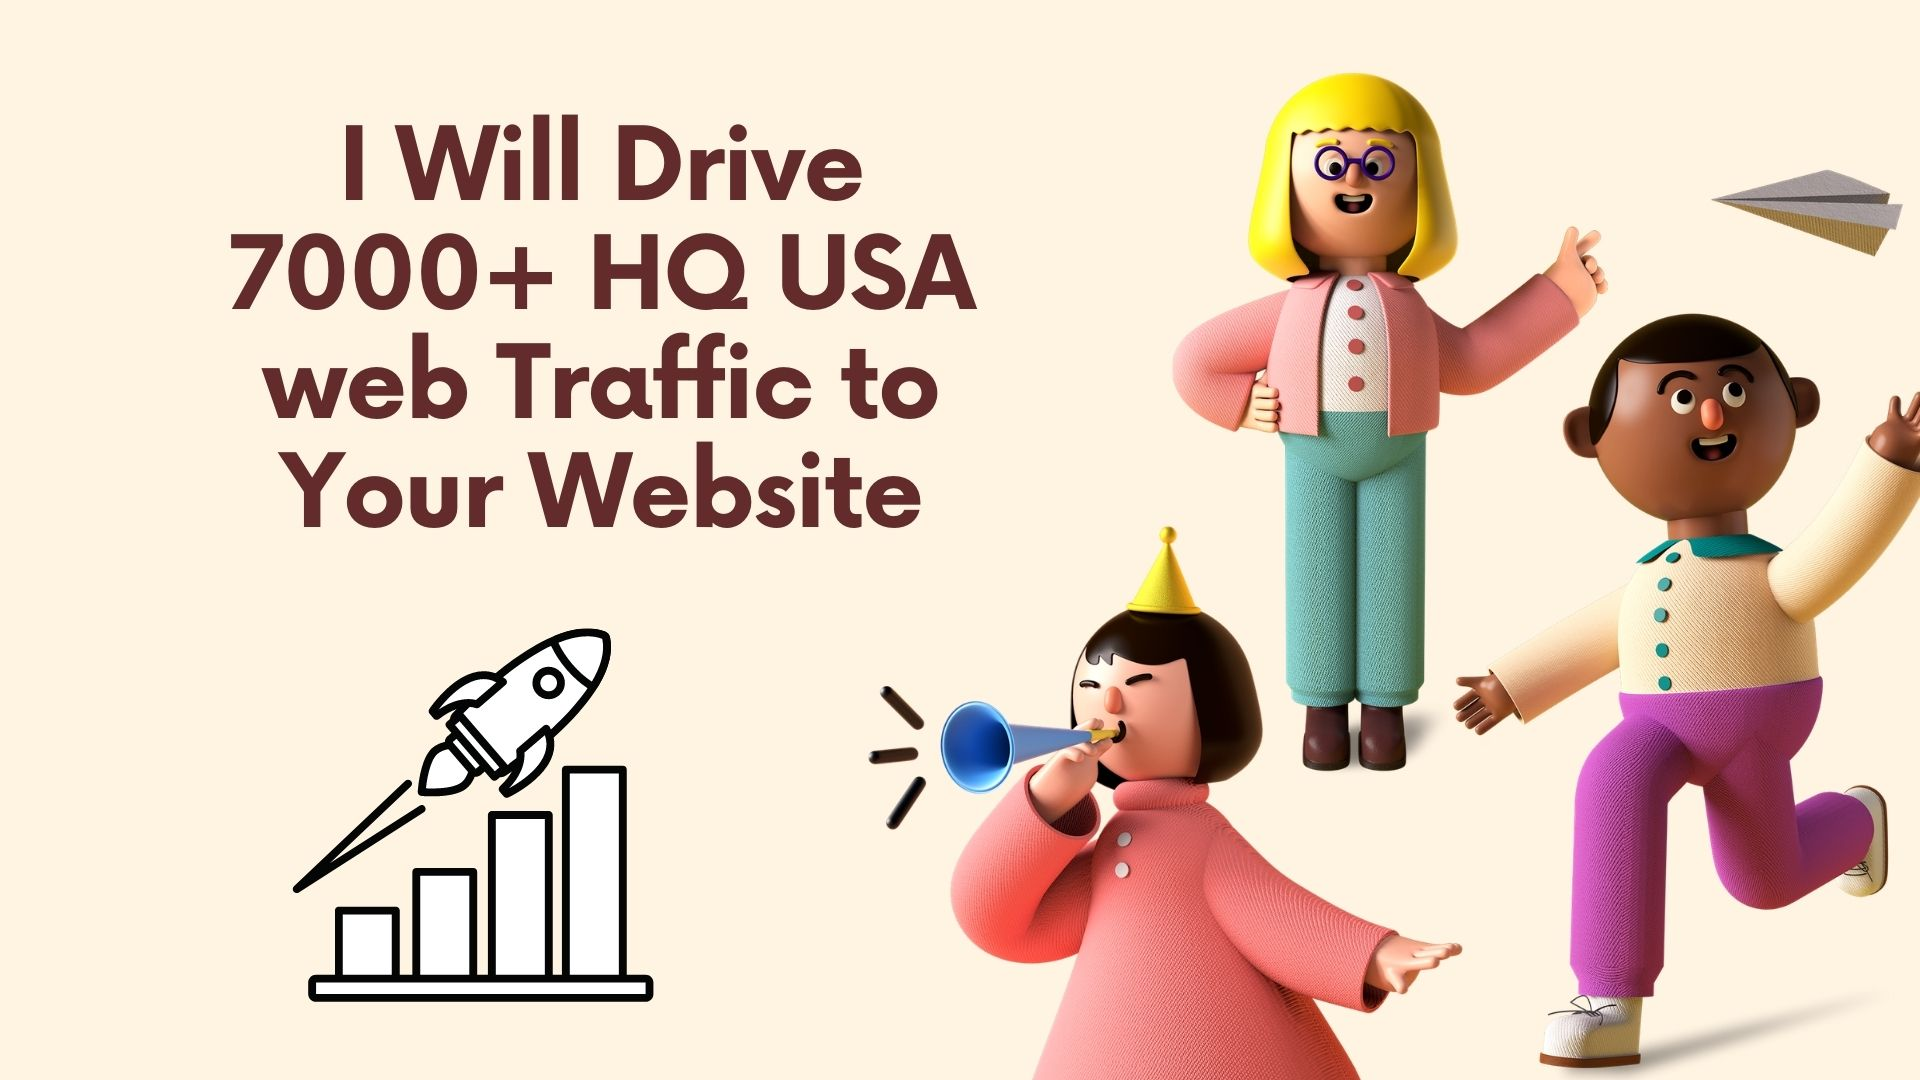 7000+ HQ USA web Traffic to Your Website